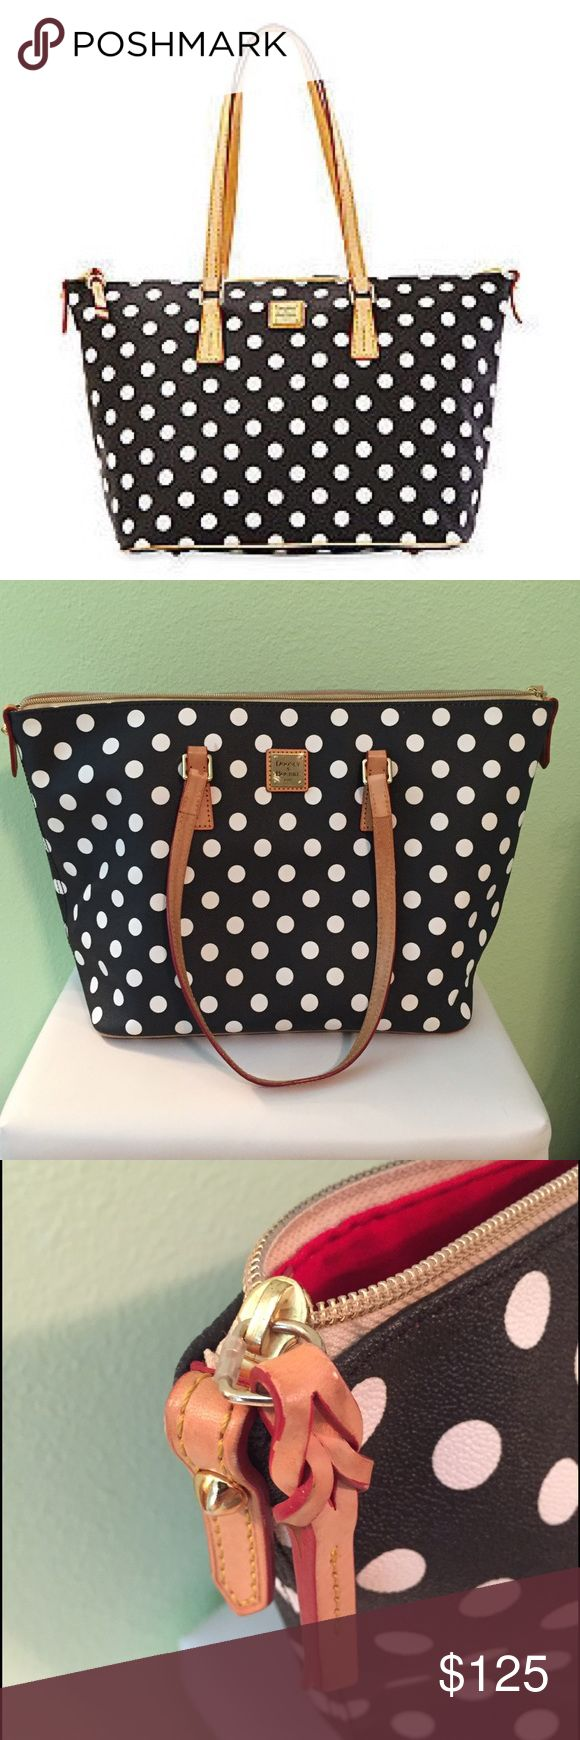 """Used Dooney & Bourke polka dot shopper Used Dooney & Bourke polka dot shopper, great condition. I bought this bag new for over $200. This was my daily carry for about 6 months. In great condition, has some staining on the interior (I have a toddler, it happens) but no noticeable exterior flaws. Tons of room!Top zip closure. Interior zip, wall and cell-phone pockets. Protective metal feet. PVC/cotton. By Dooney & Bourke.                      13""""W x 11""""H x 6""""D. (Interior capacity: large.) 9""""…"""